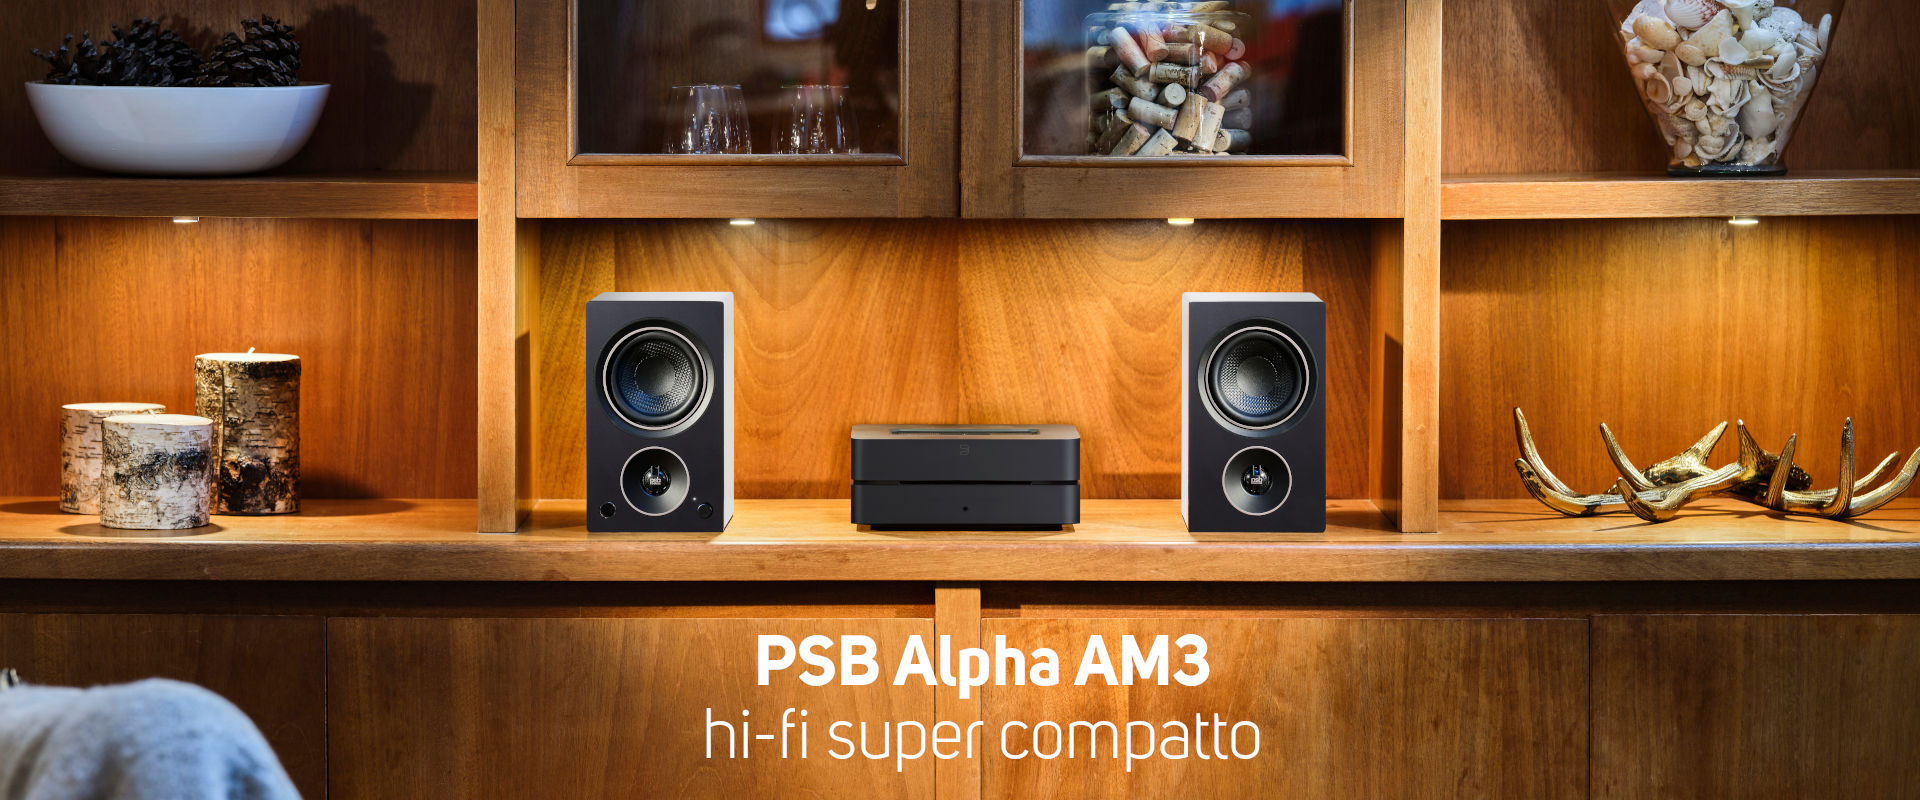 psb alpha am3